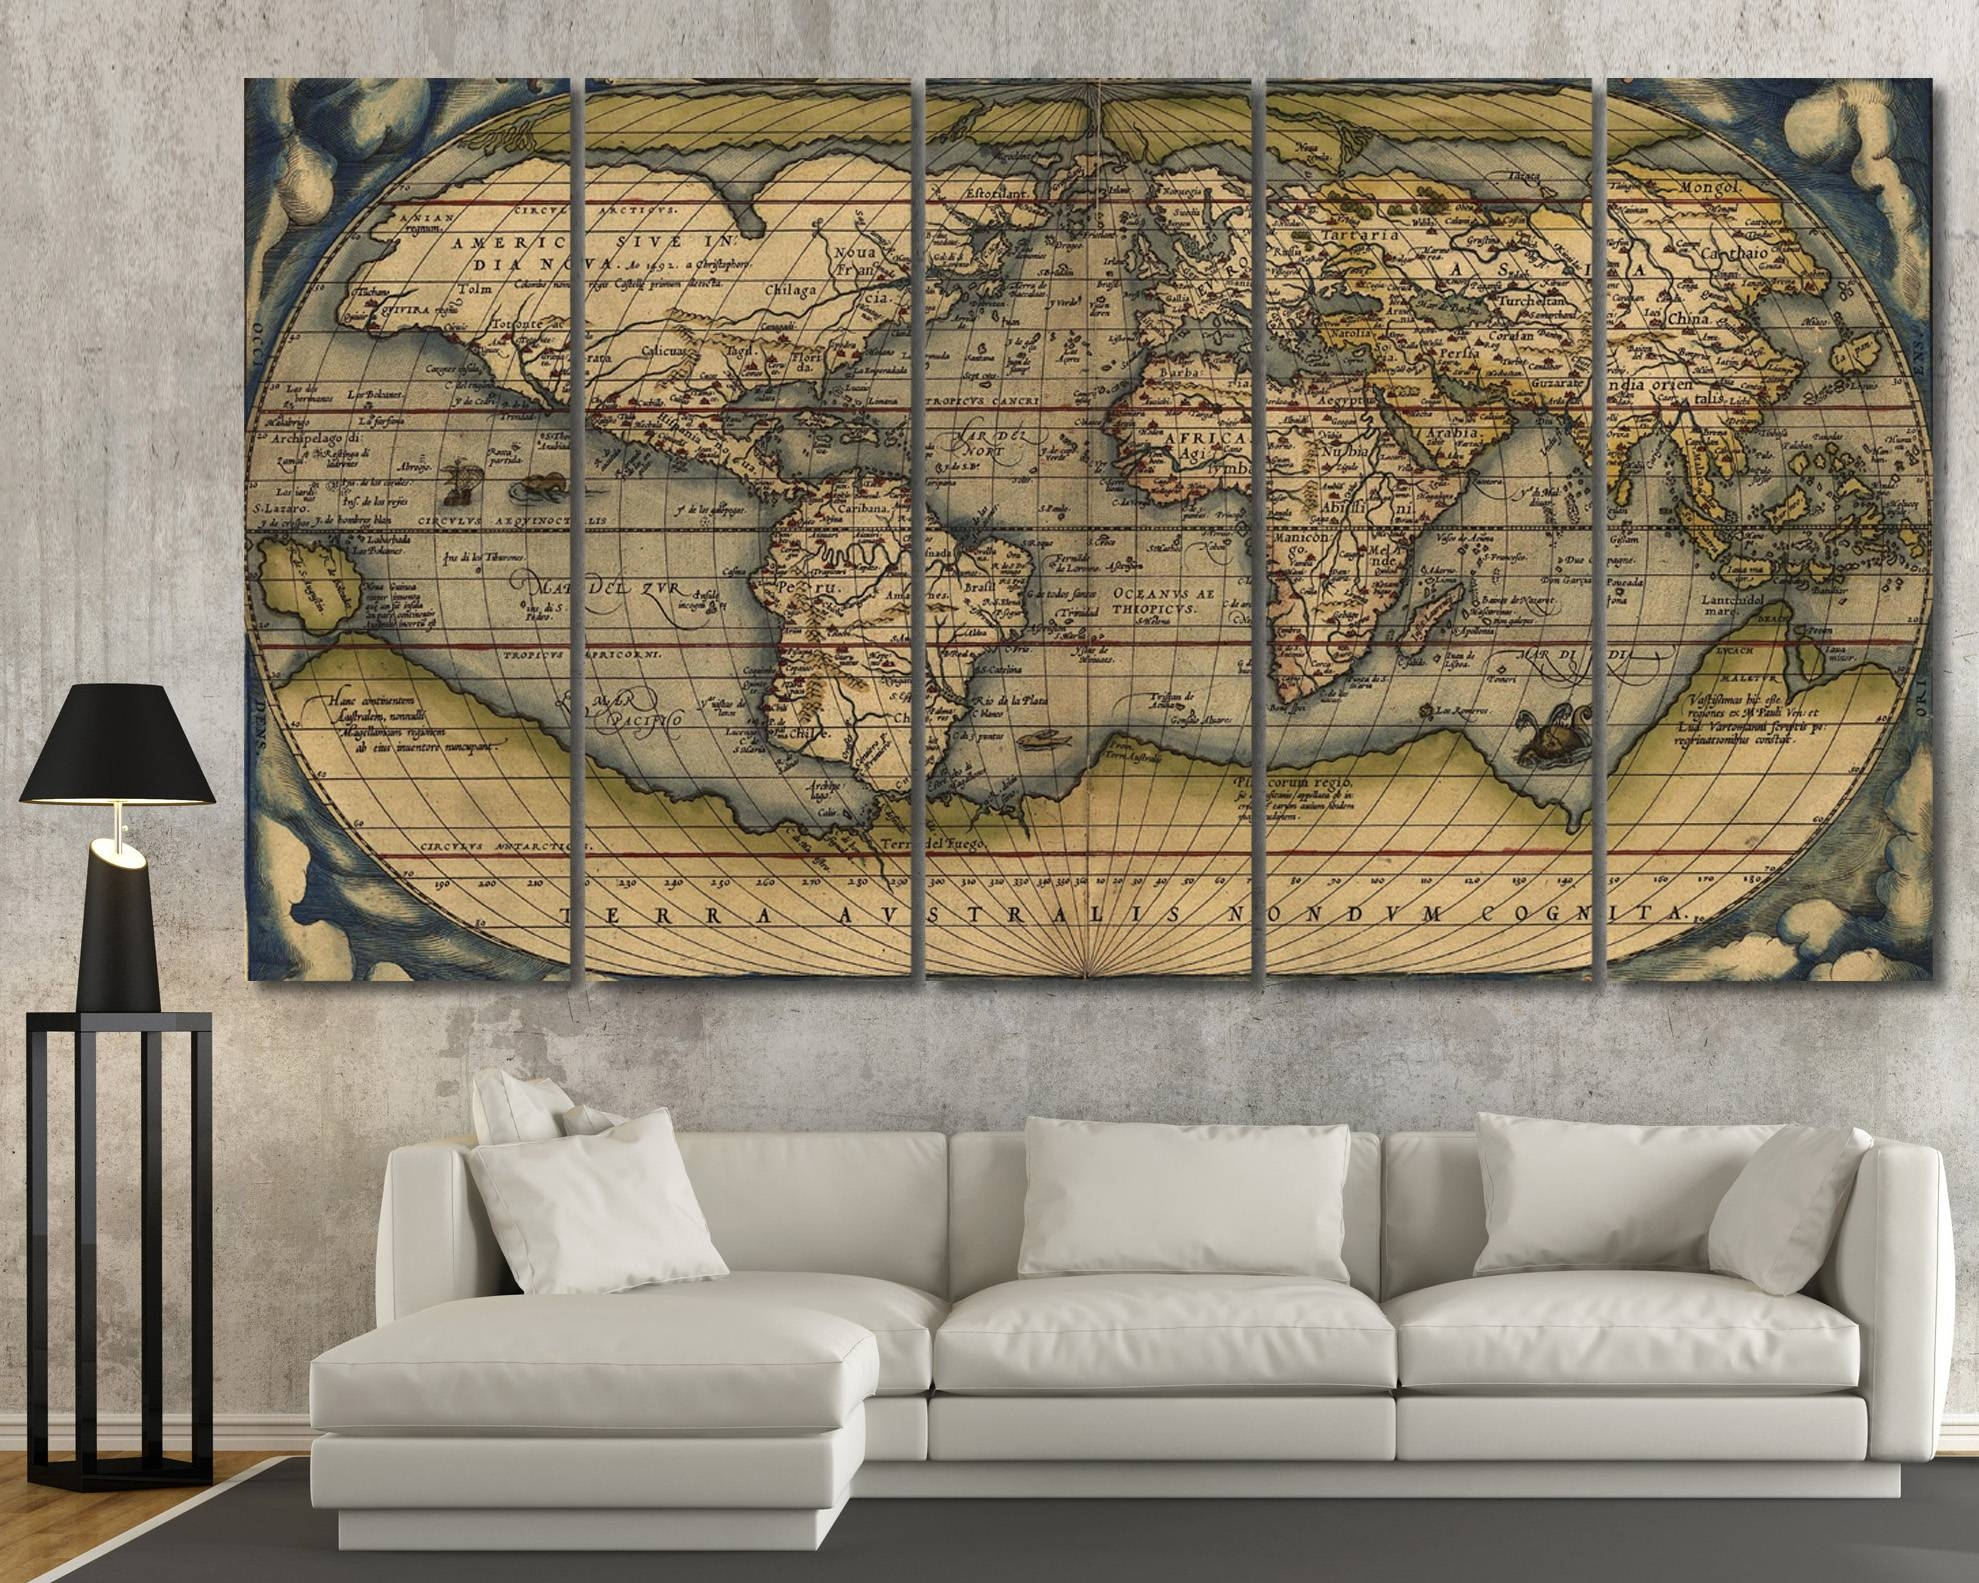 Large Vintage Wall Art Old World Map At Texelprintart Inside Most Up To Date World Wall Art (View 11 of 20)